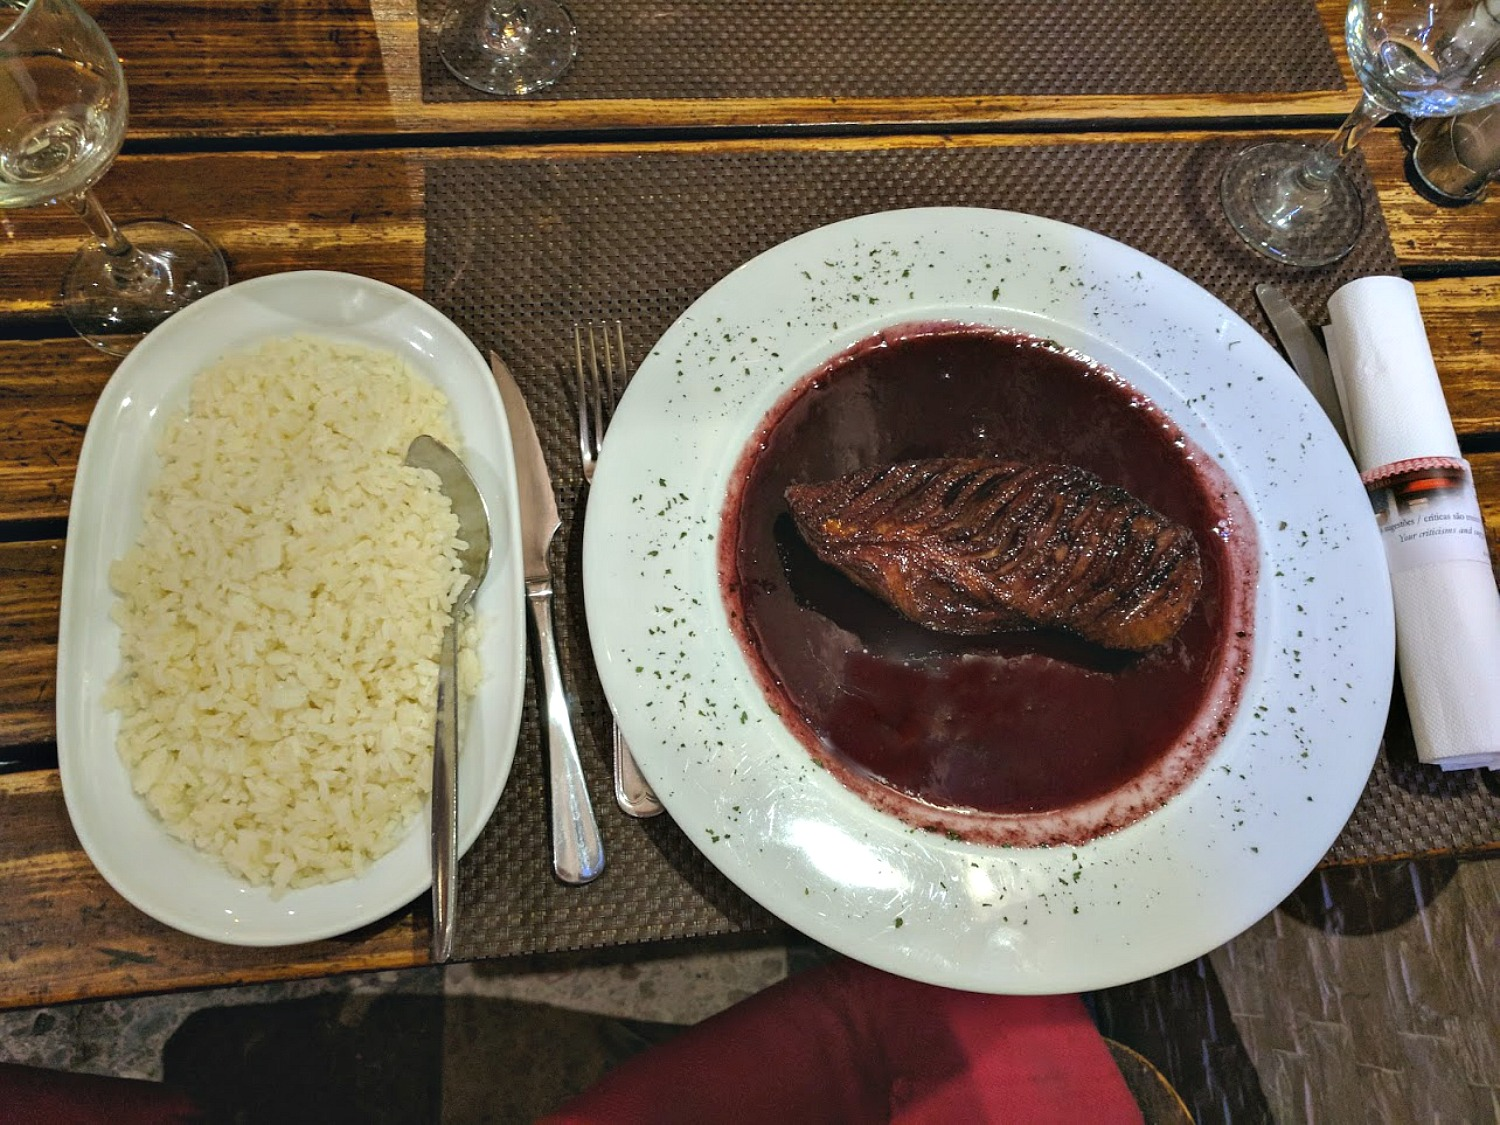 11 Top Reasons to Visit Portugal. Introducing another superb dish, a duck in a port reduction. Not only delicious but price at about $15!